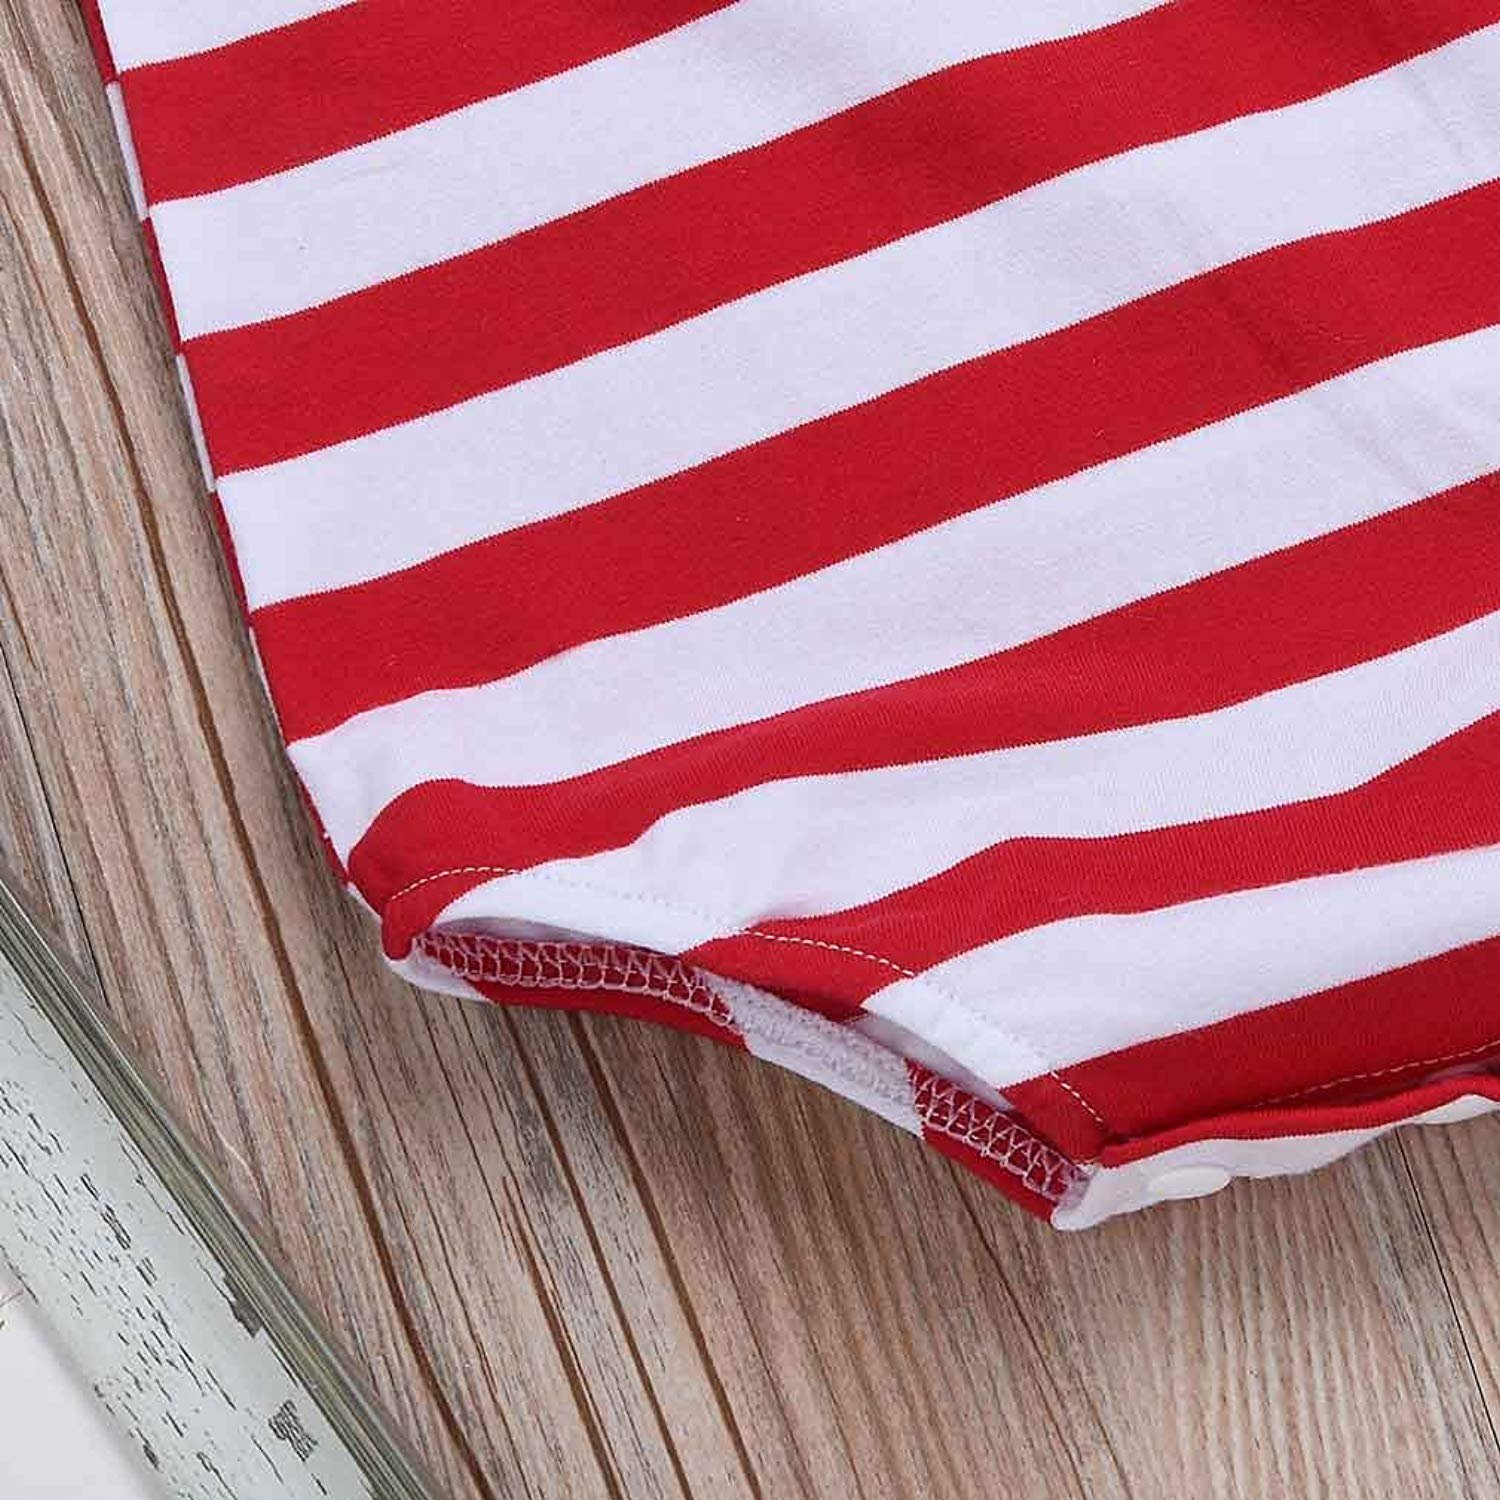 LiwnzhenSH Baby Boy Girl Bodysuit Climbing Clothes USA Flag American Stars Stripes Infant Rompers Jumpsuit